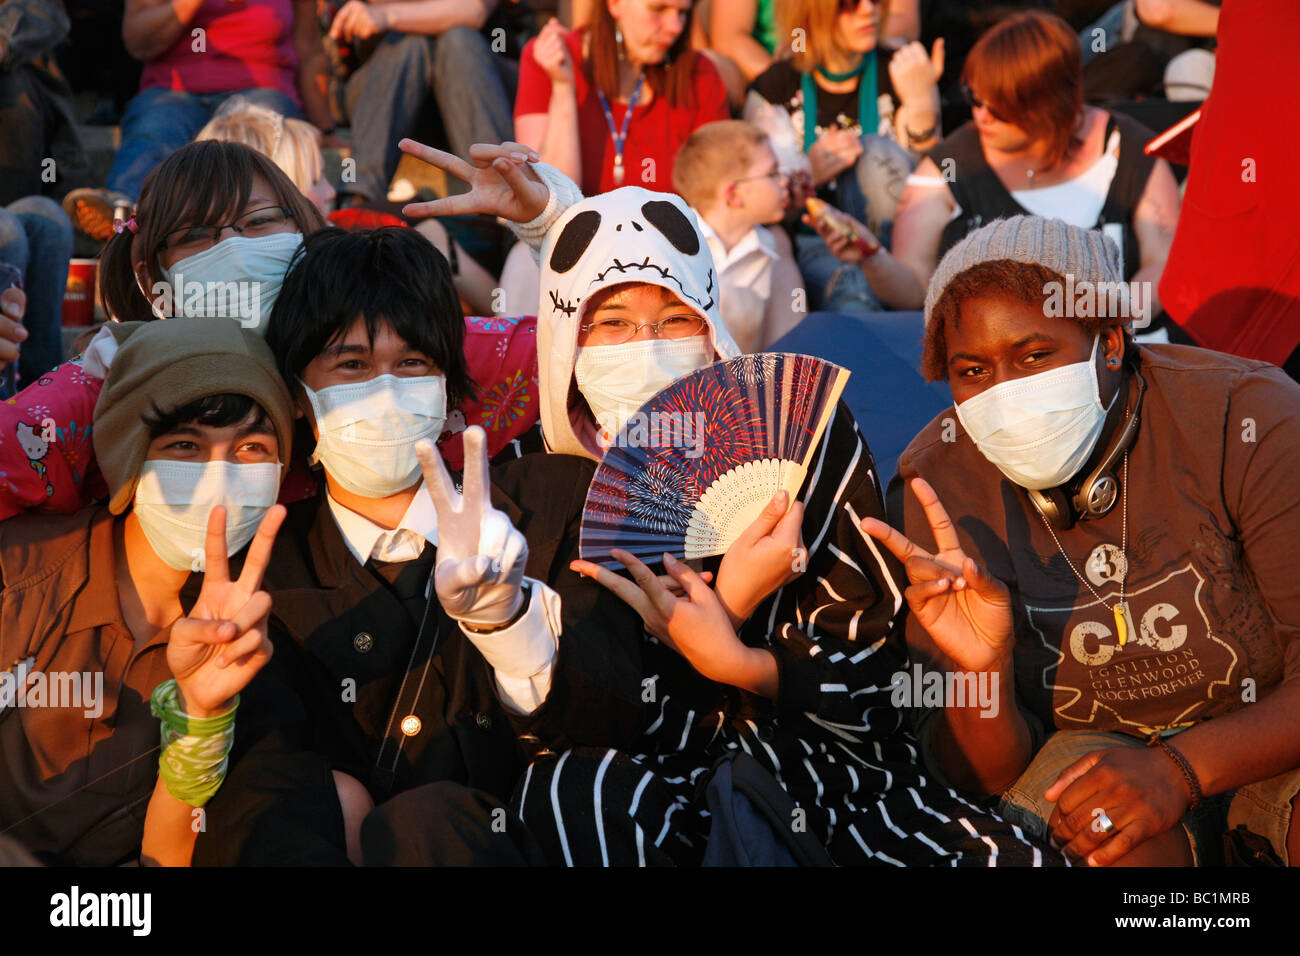 Group of 5 young persons wearing face masks and showing the victory sign on the Japanese Day in Düsseldorf 2009 Stock Photo